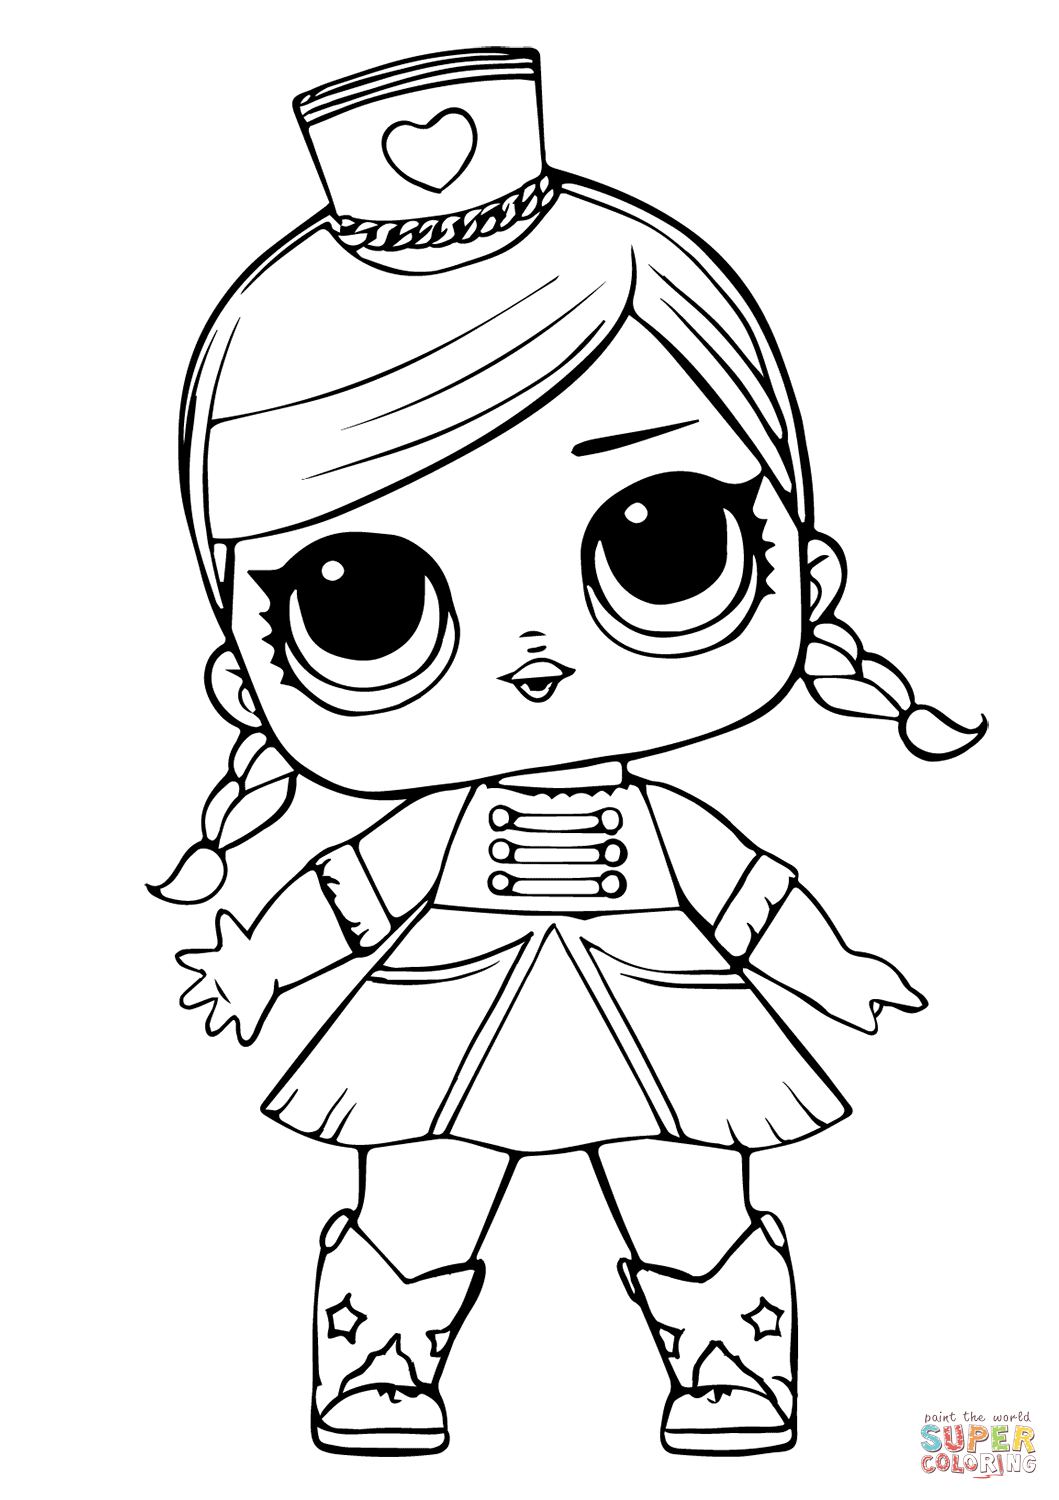 lol toy coloring pages lol coloring pages cute printable surprise dolls print toy lol pages coloring